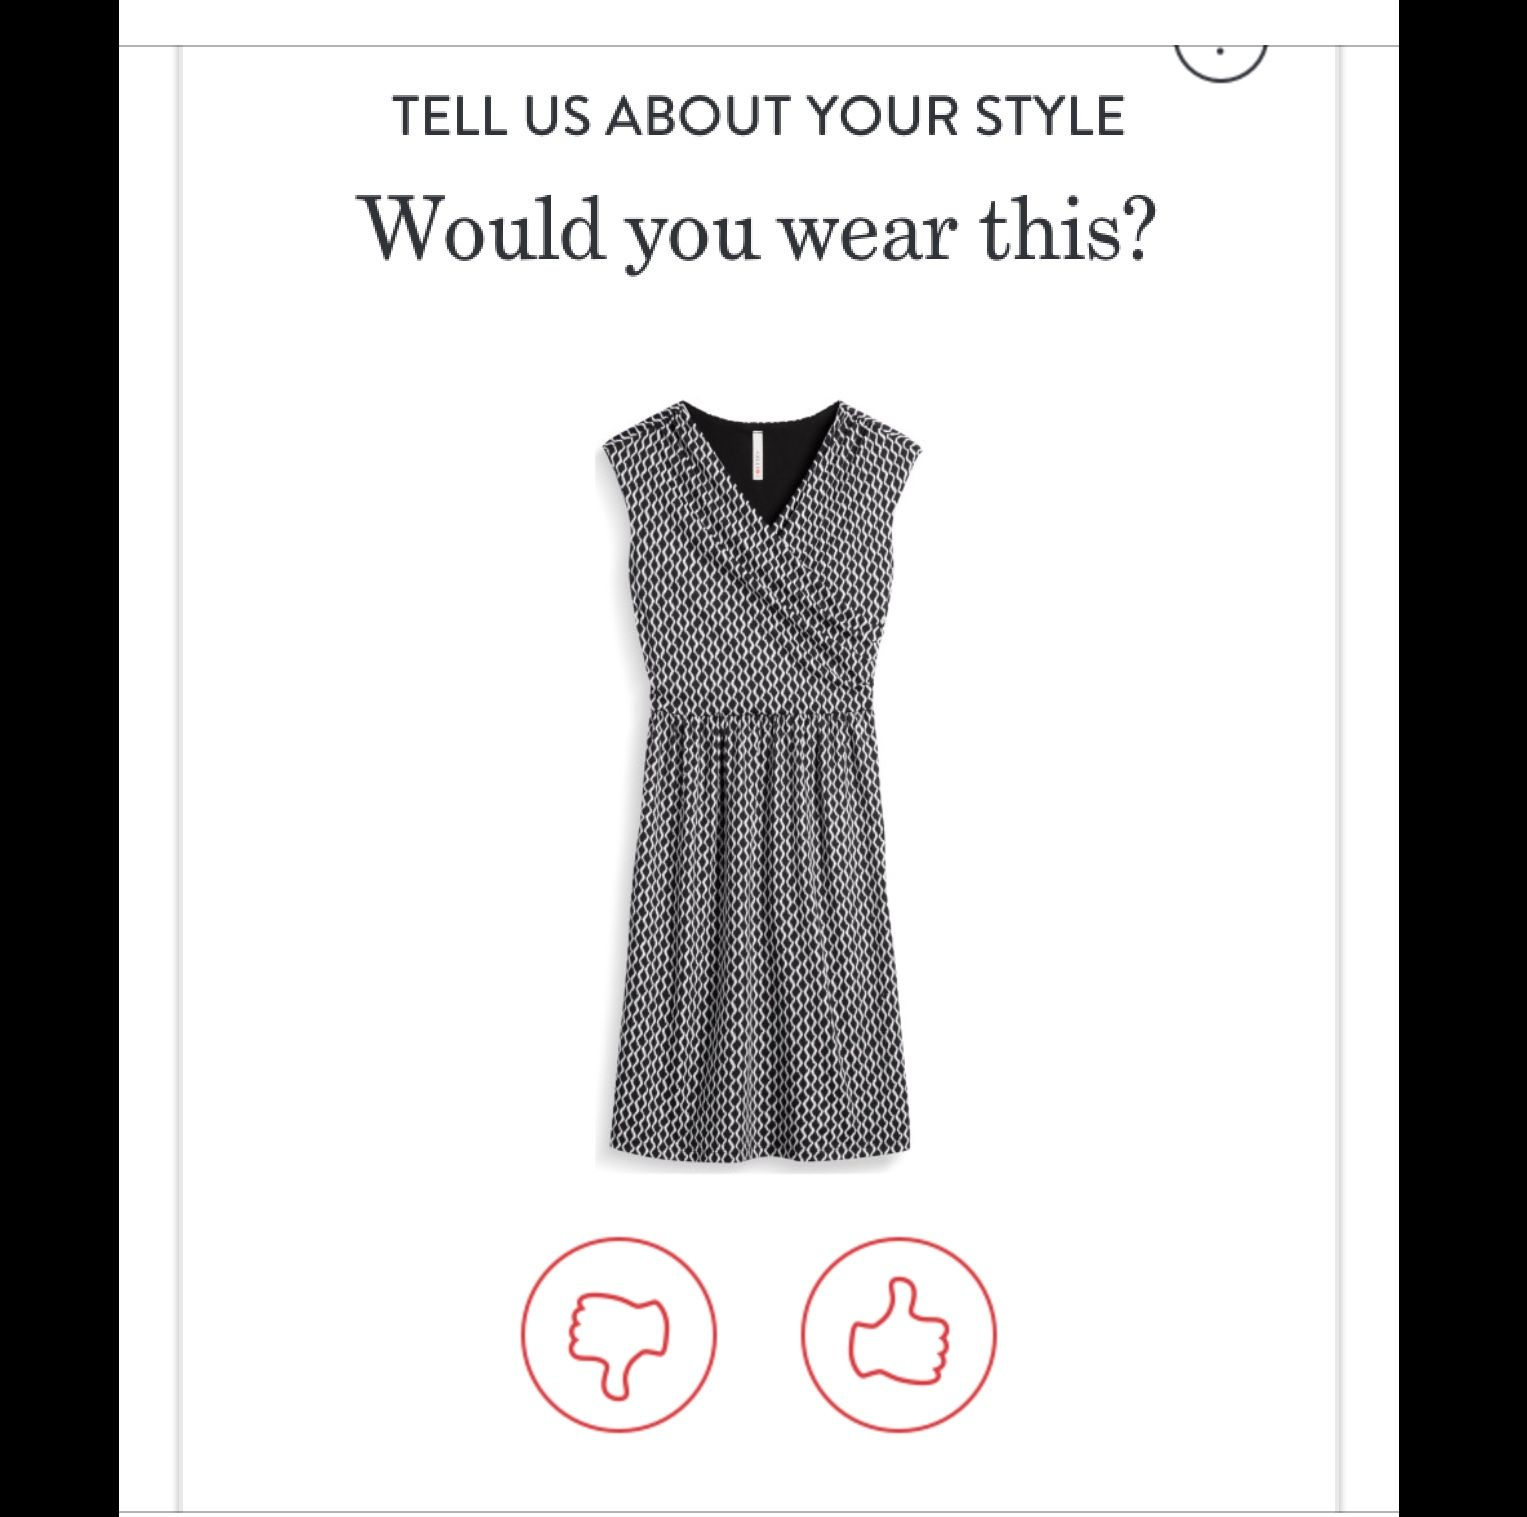 This is a fun dress from the style quiz today what to wear